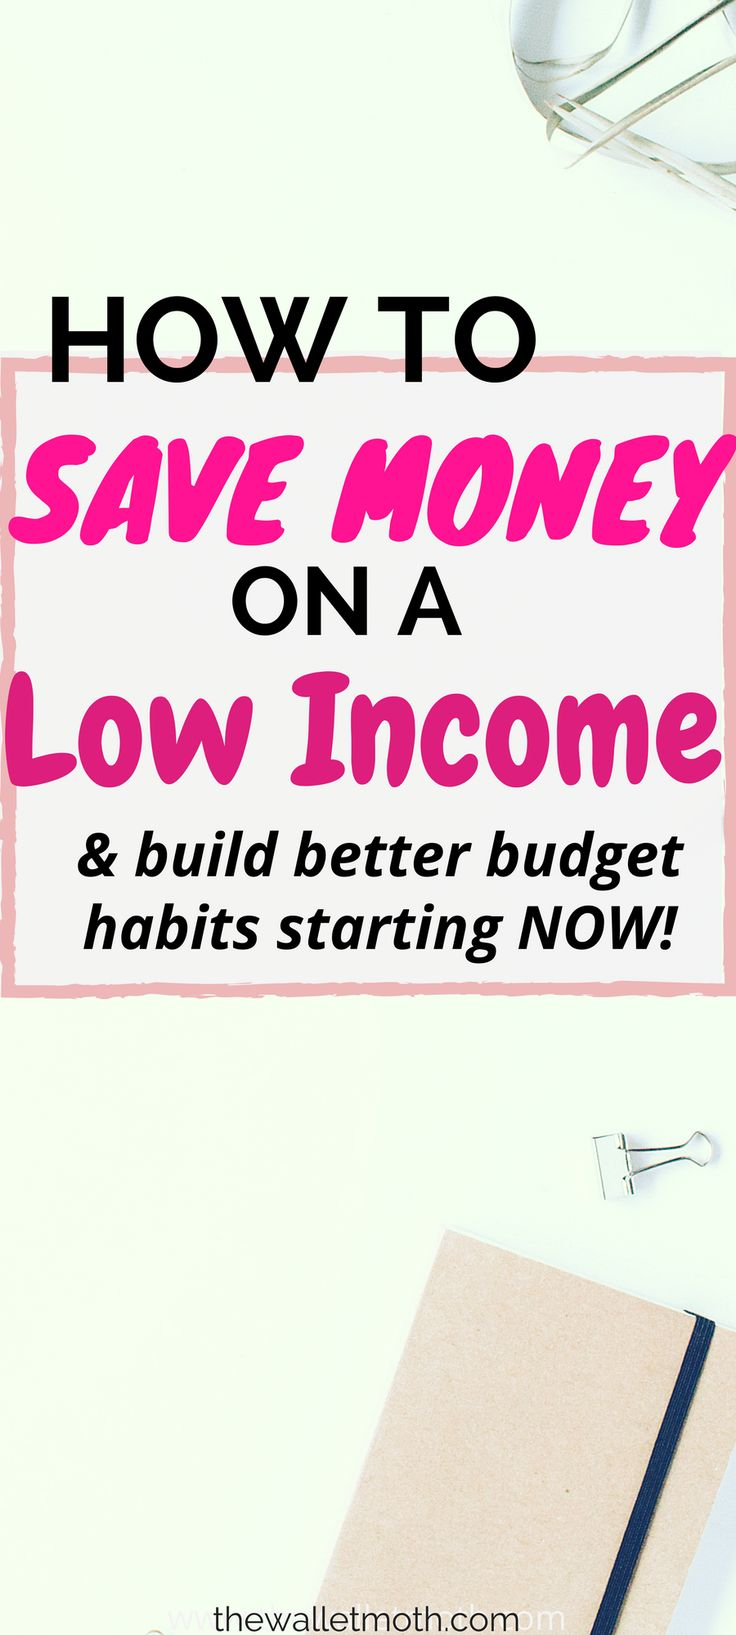 This post contains EVERY tip you need to know on how to save money on a low income. Find out how to budget better and save more money every month with these great tips! Thanks for pinning!